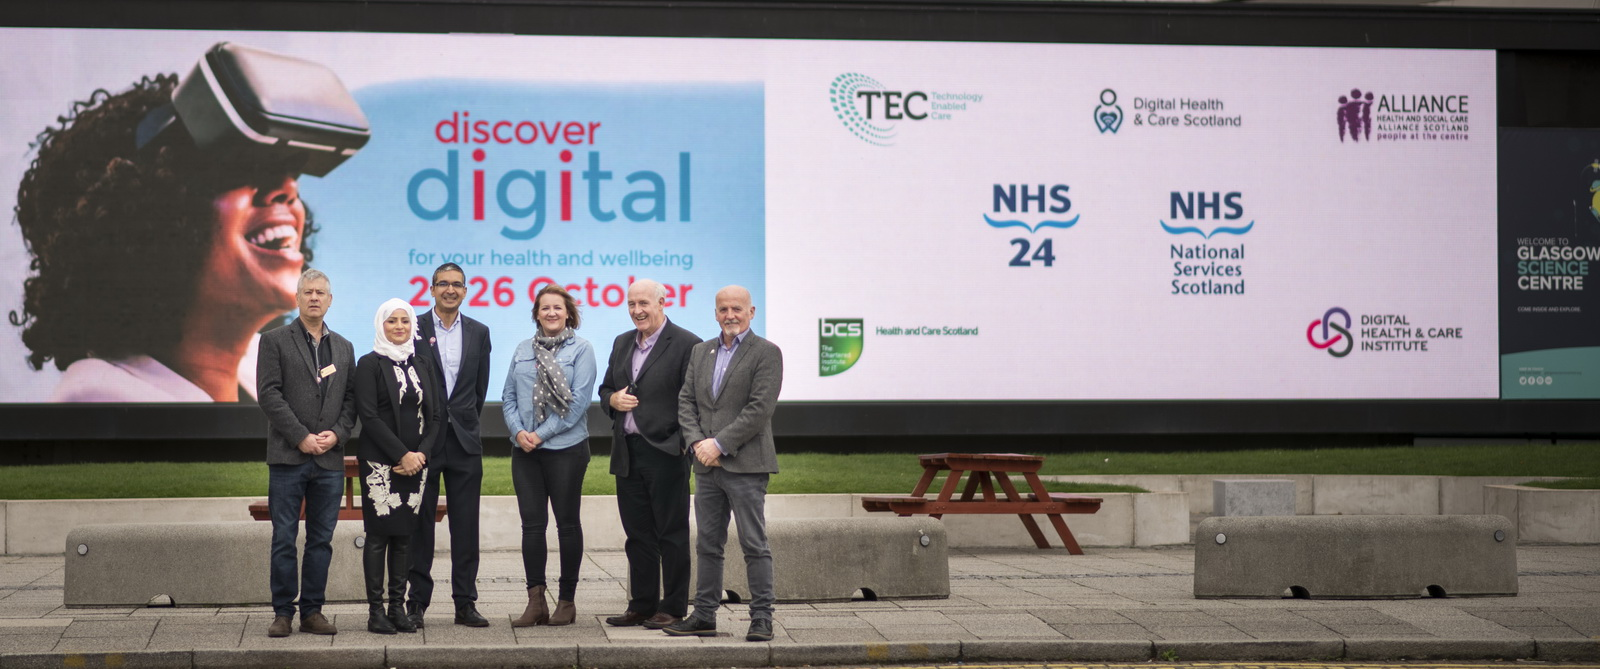 Image of partners standing in front of Science Centre sccreen with discover Digital branding